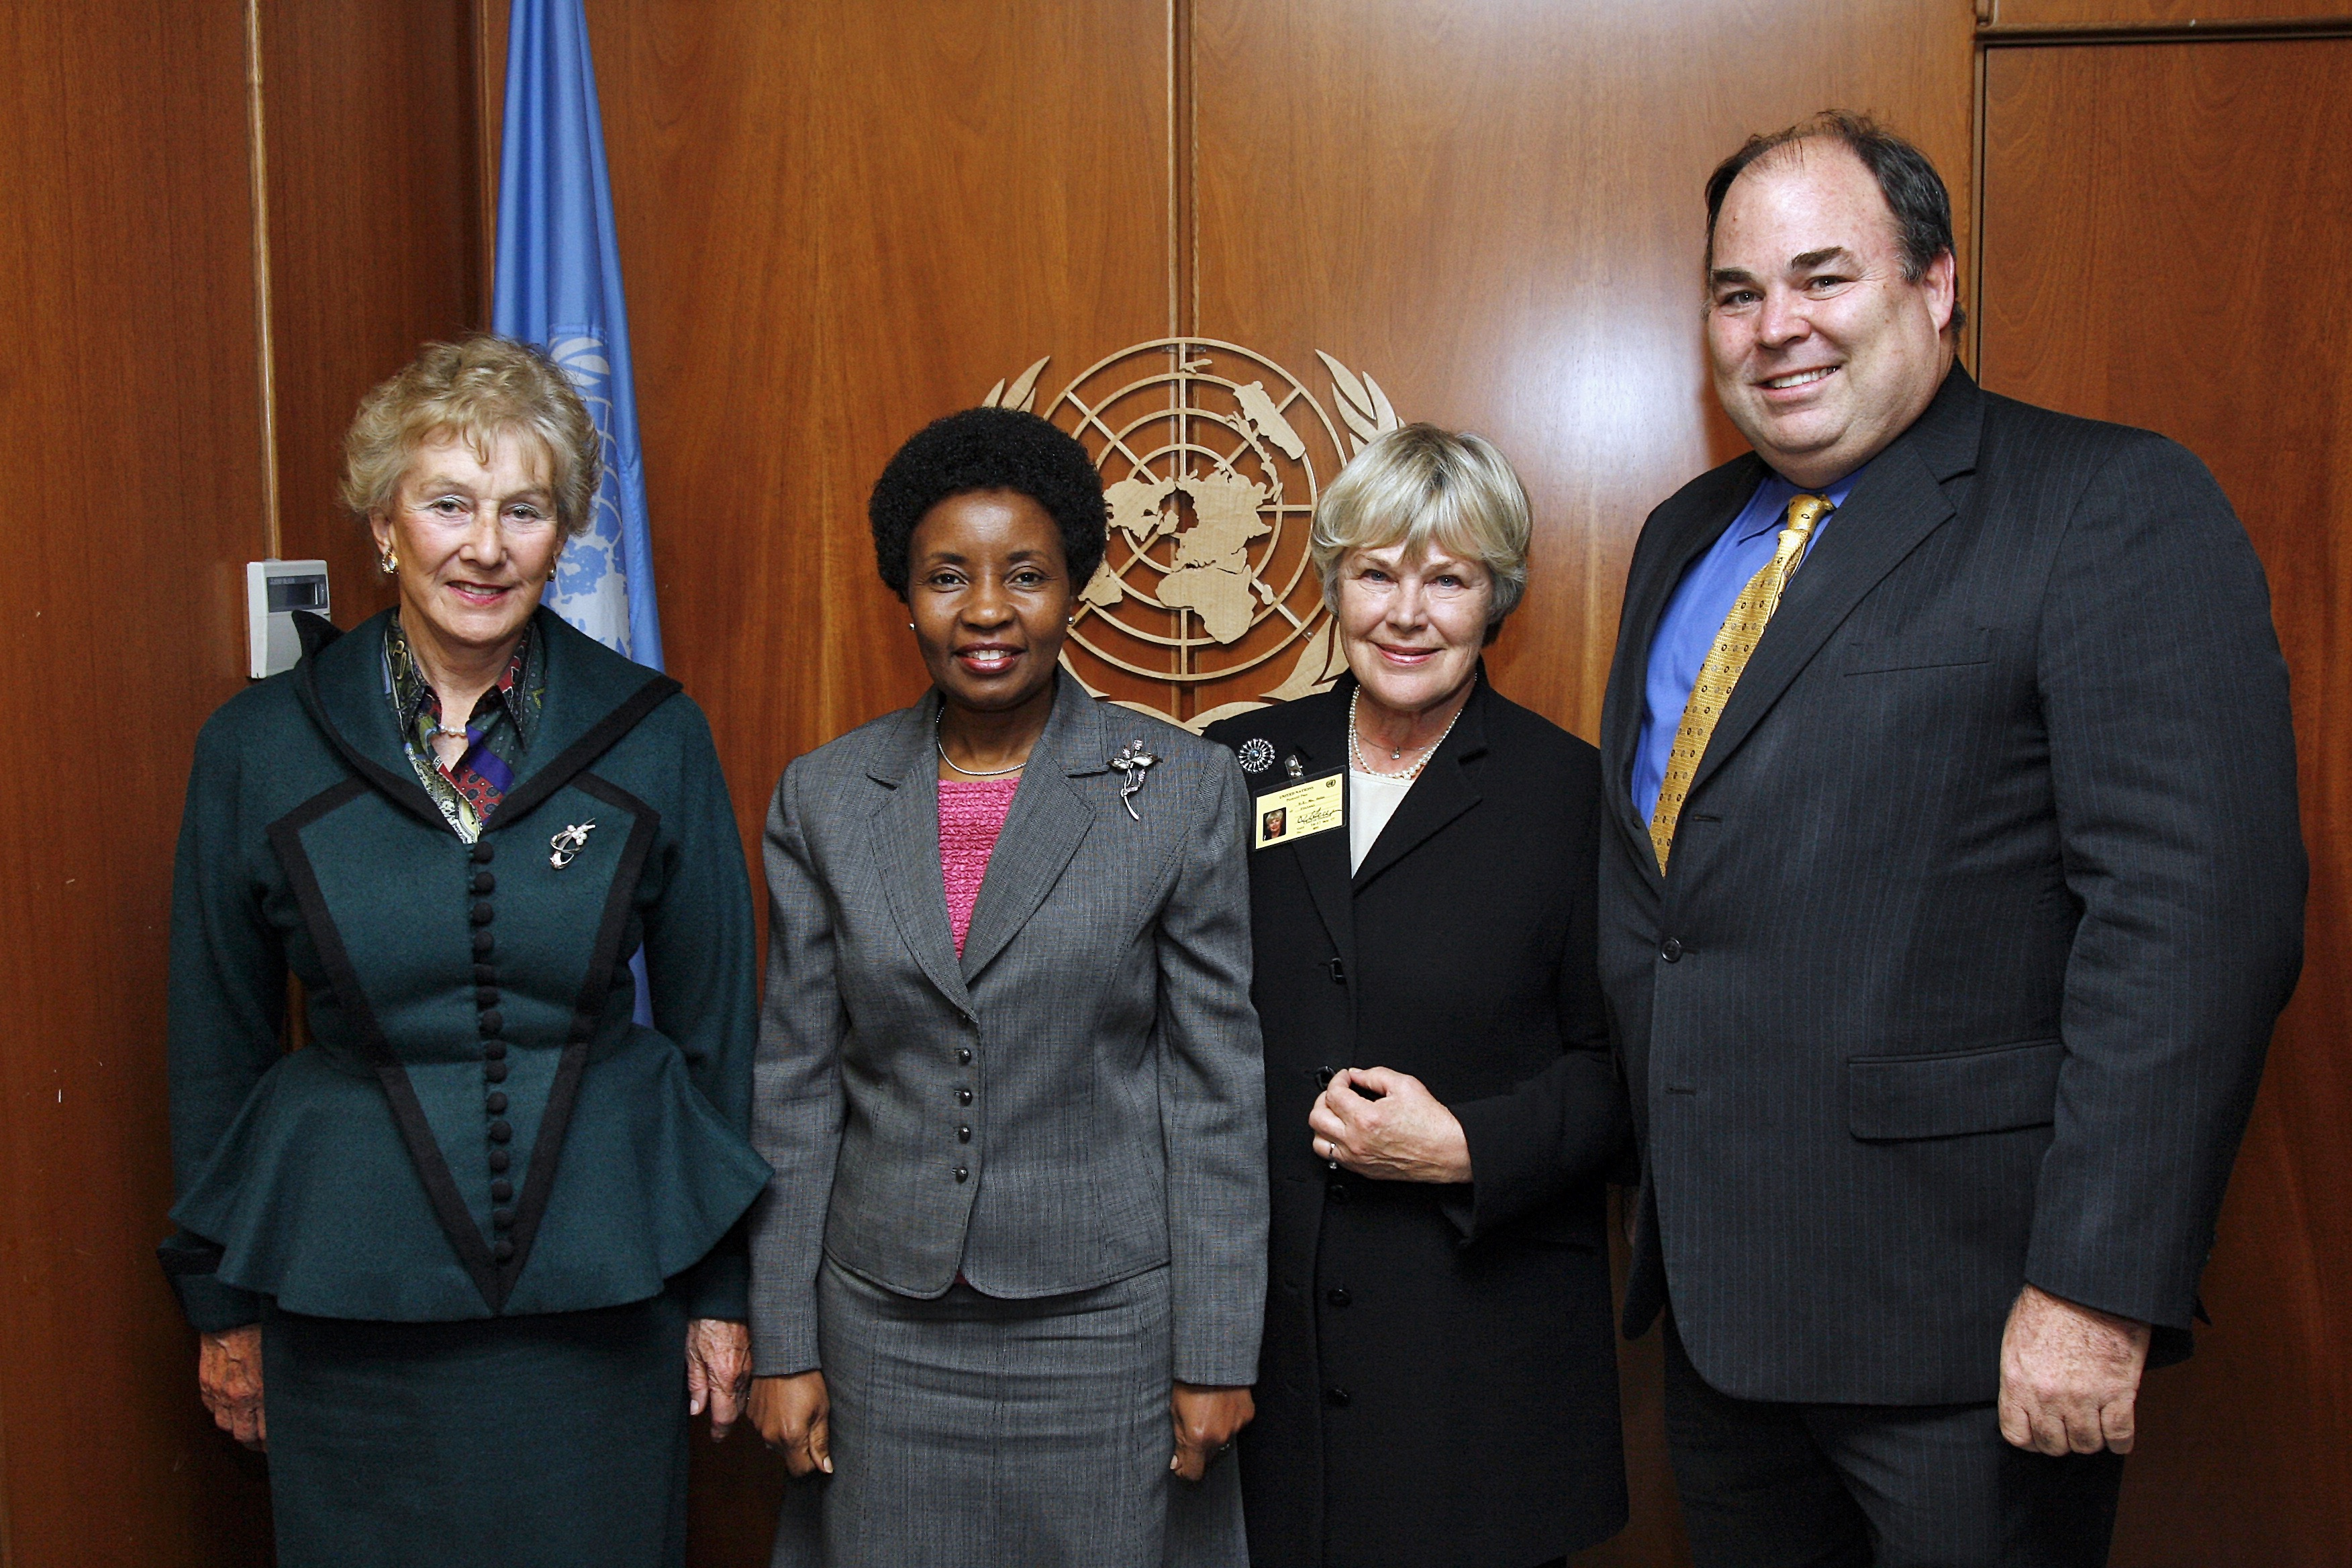 Lobbying for More UN Women Mediators